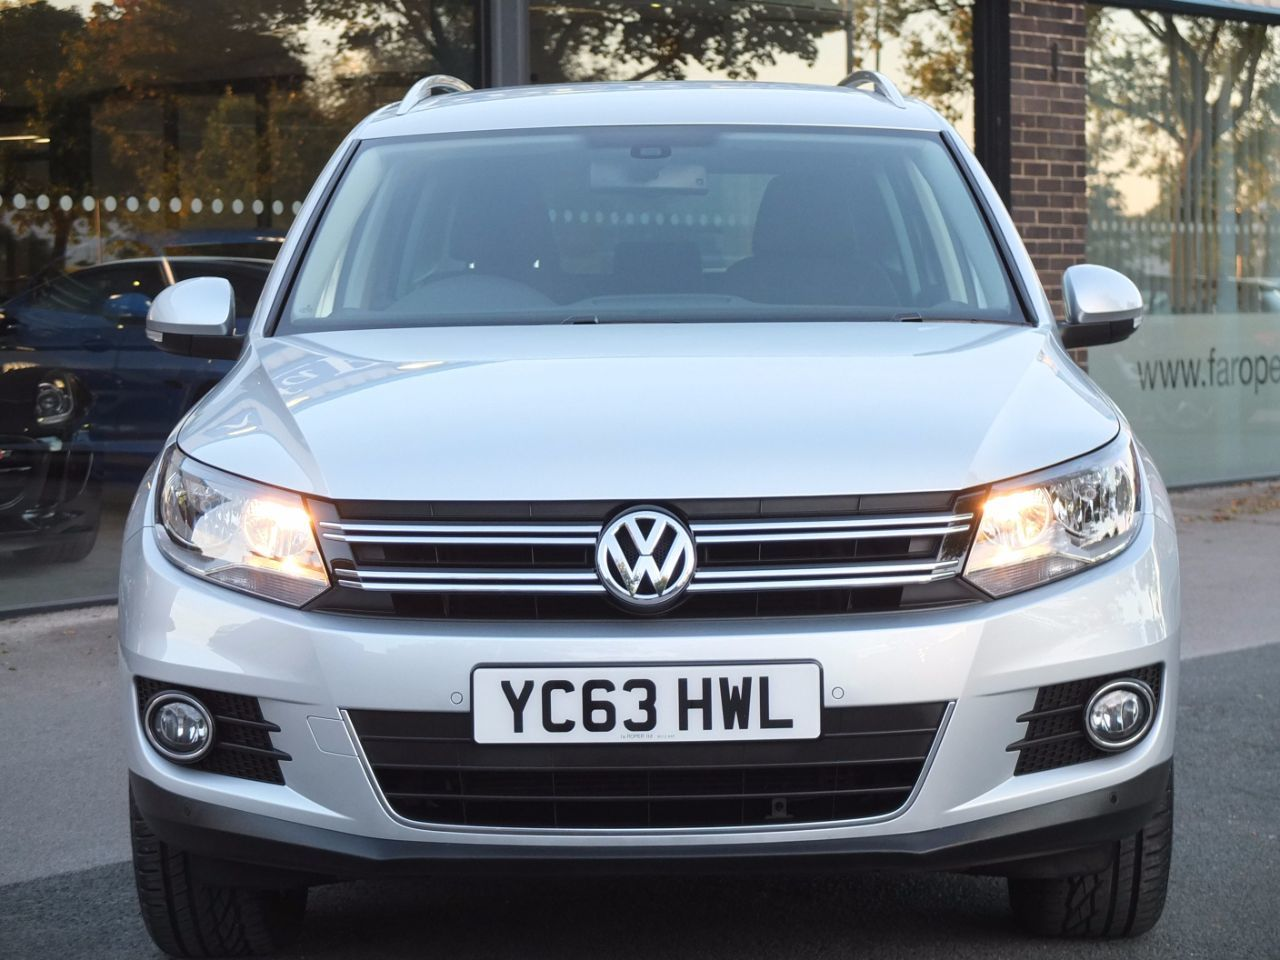 Volkswagen Tiguan 2.0 TDi BlueMotion Tech 4MOTION Match DSG Estate Diesel Reflex Silver Metallic